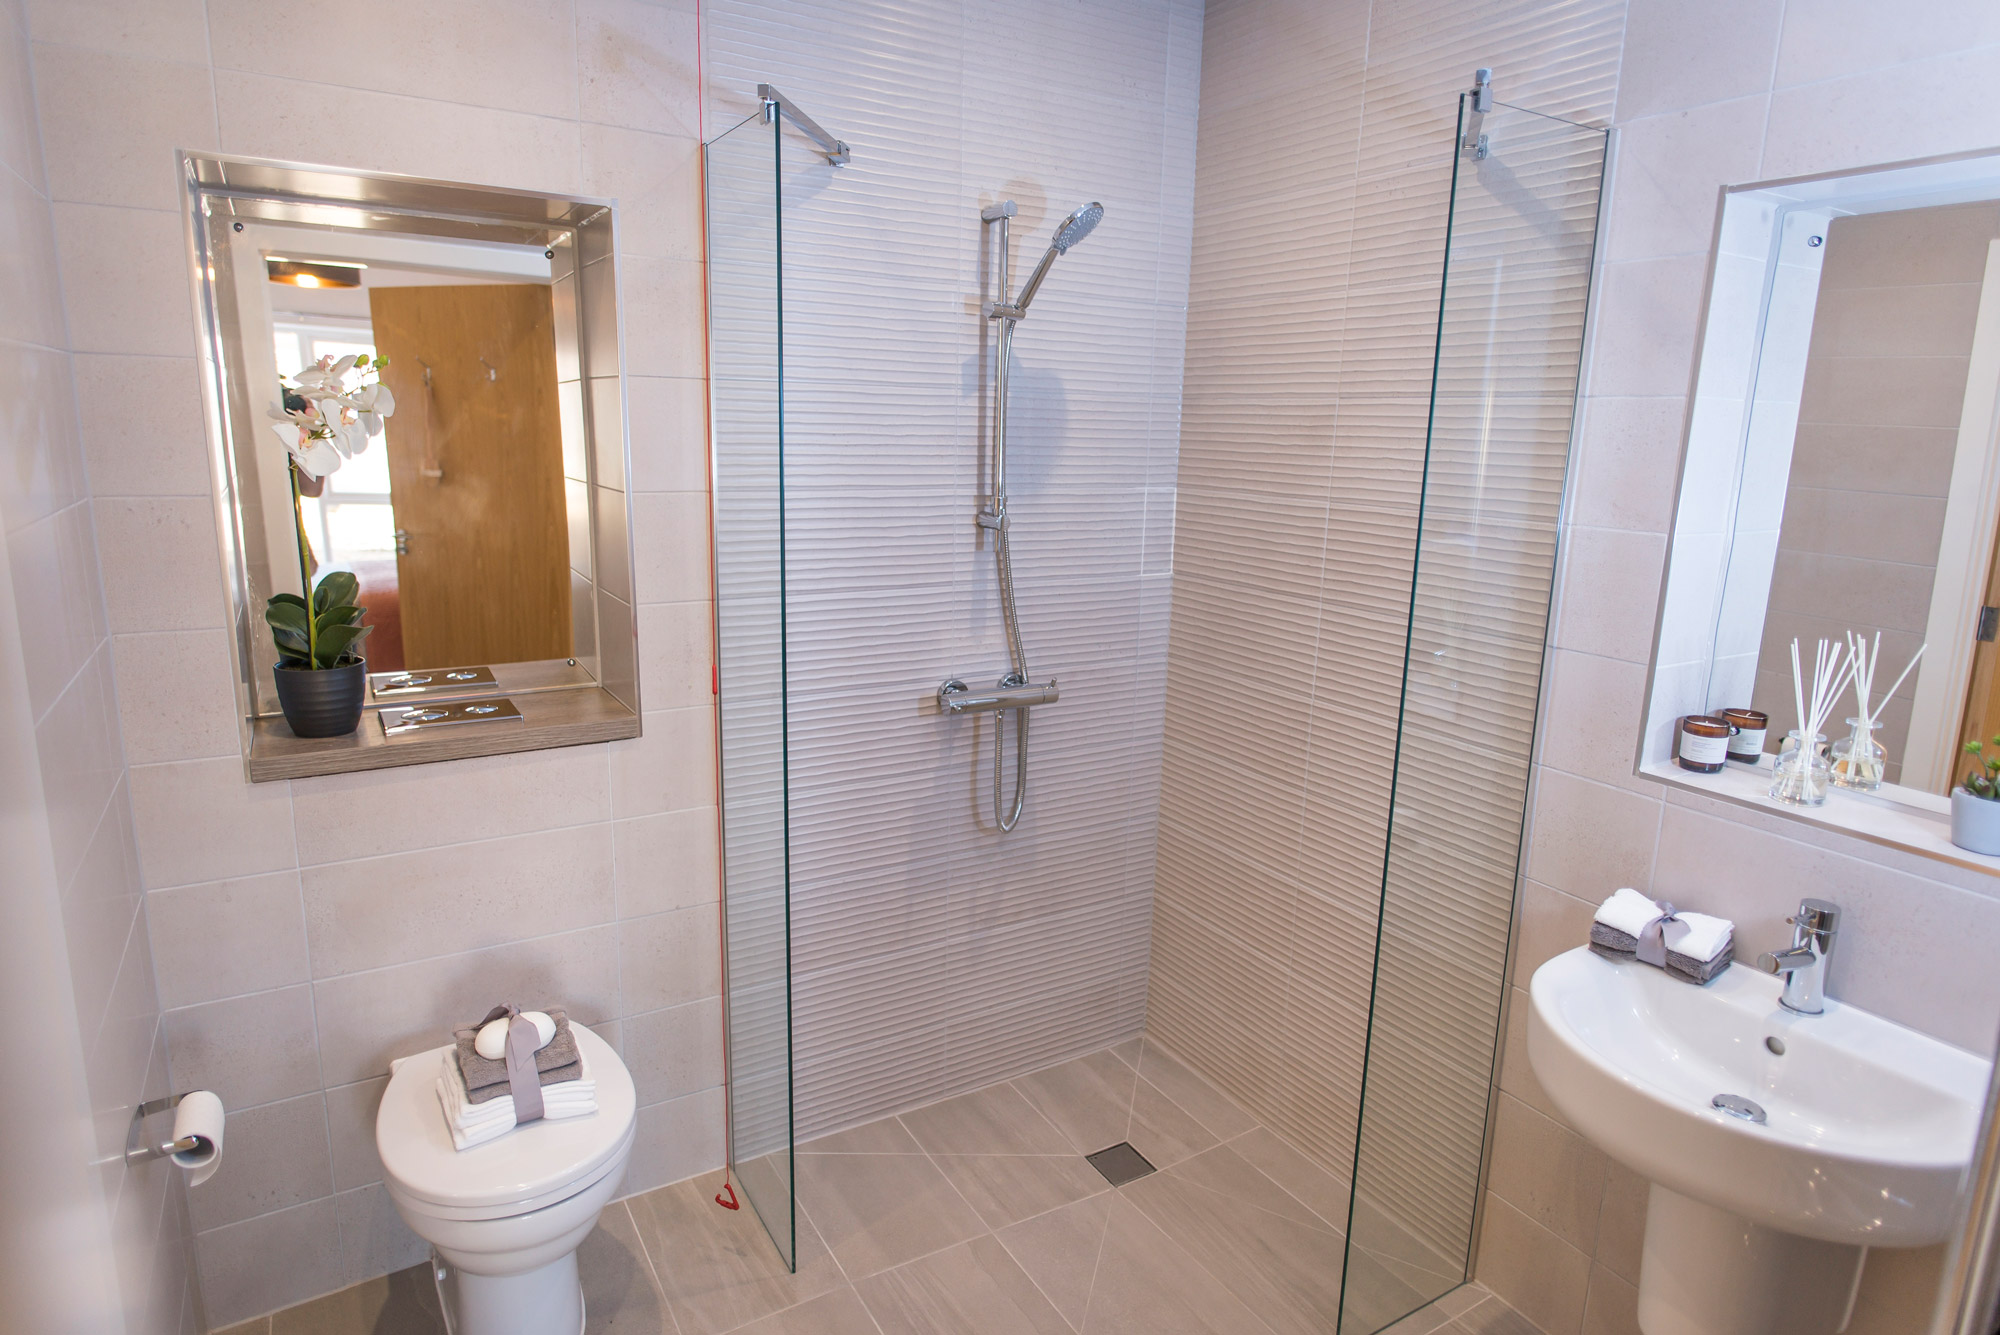 Image of typical bathroom